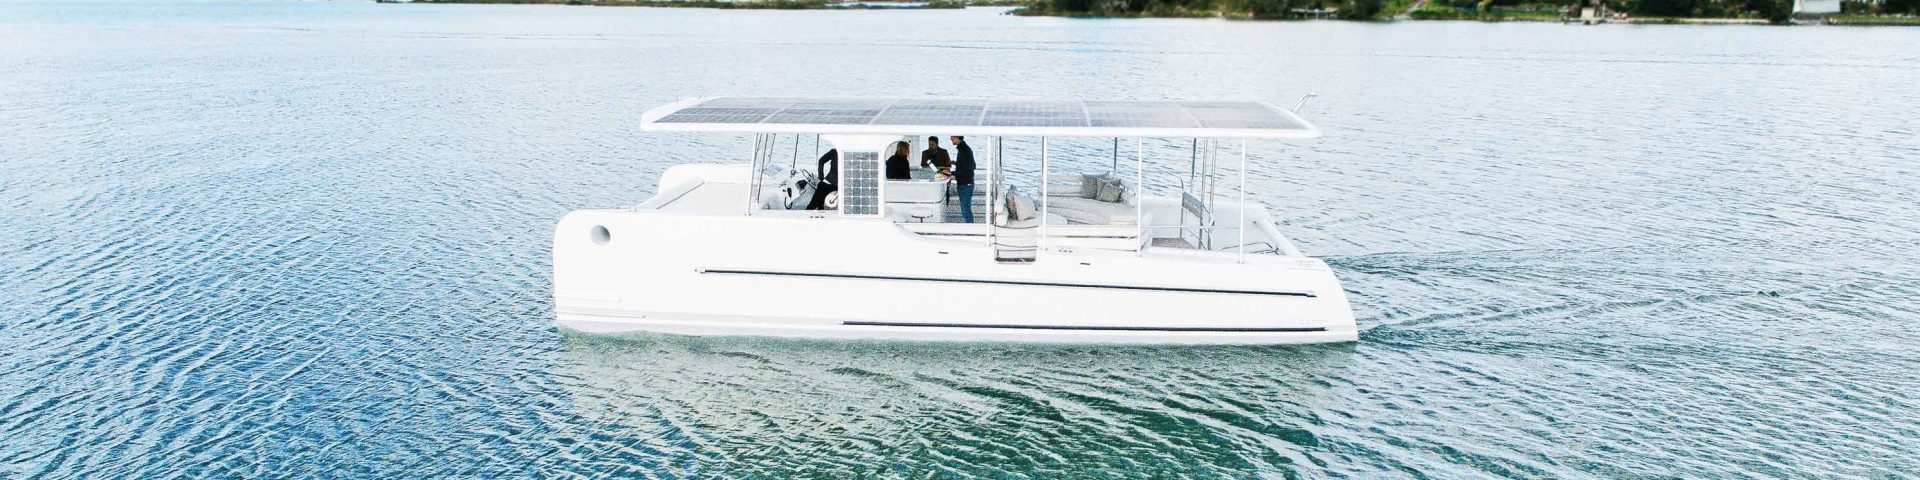 SoelCat solar electric boat for sustainable tourism